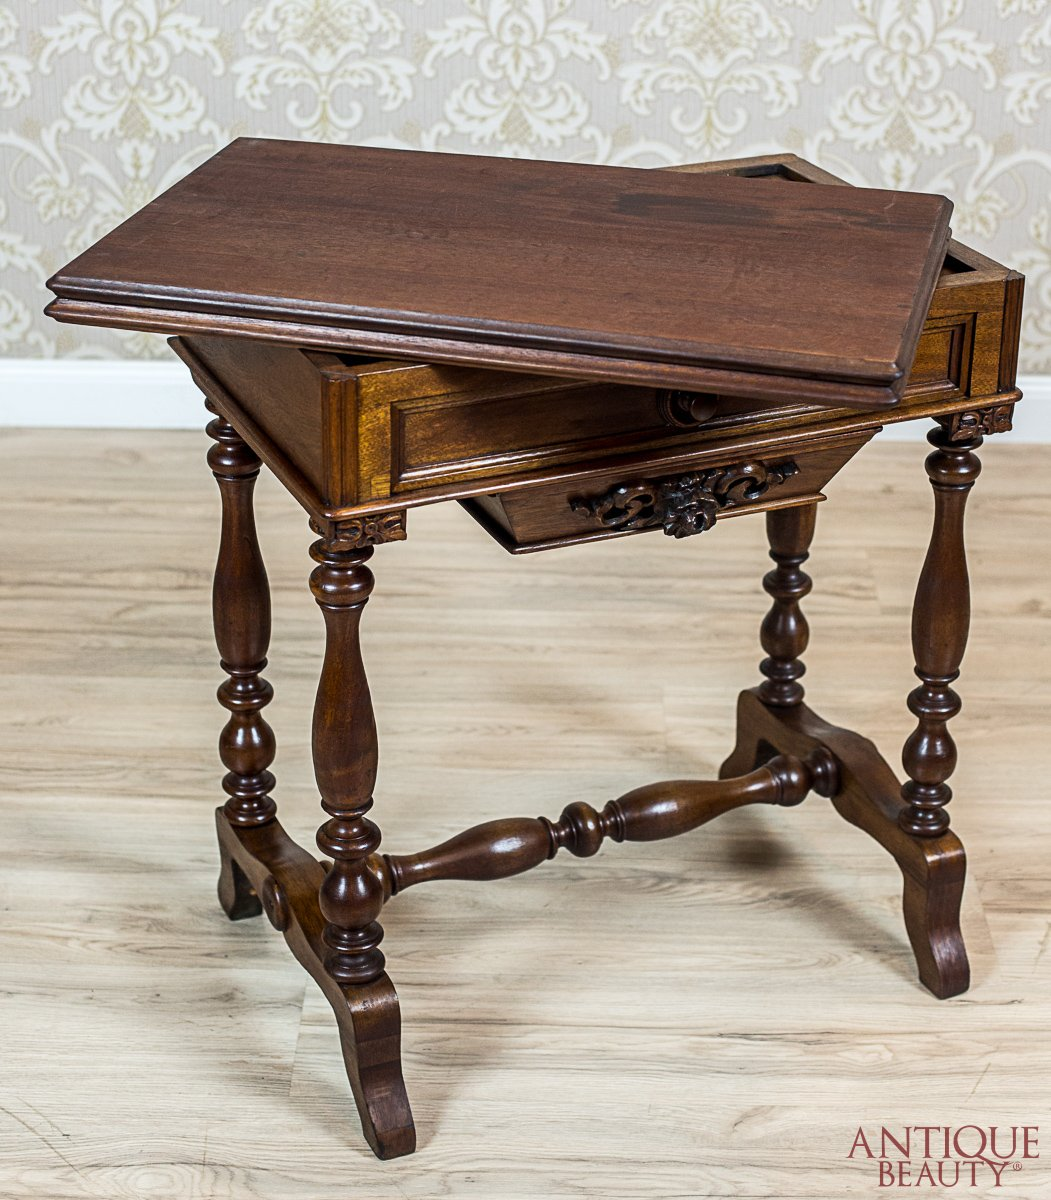 Antique Beauty Antique Sewing Tablecard Table